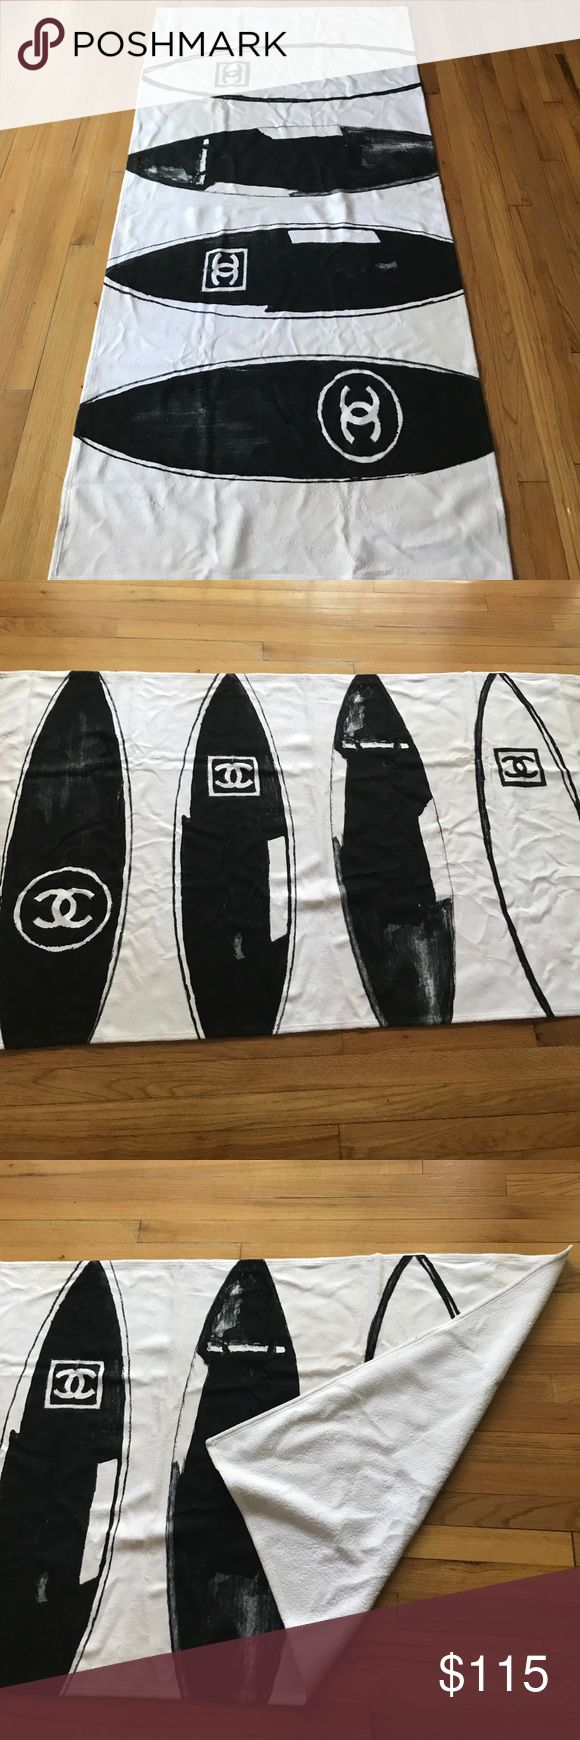 Chanel Beach Towel Super soft, super cute, surfboard Chanel Beach Towel. You will be the talk of the beach or pool. Price reflects authenticity. NWOT CHANEL Other